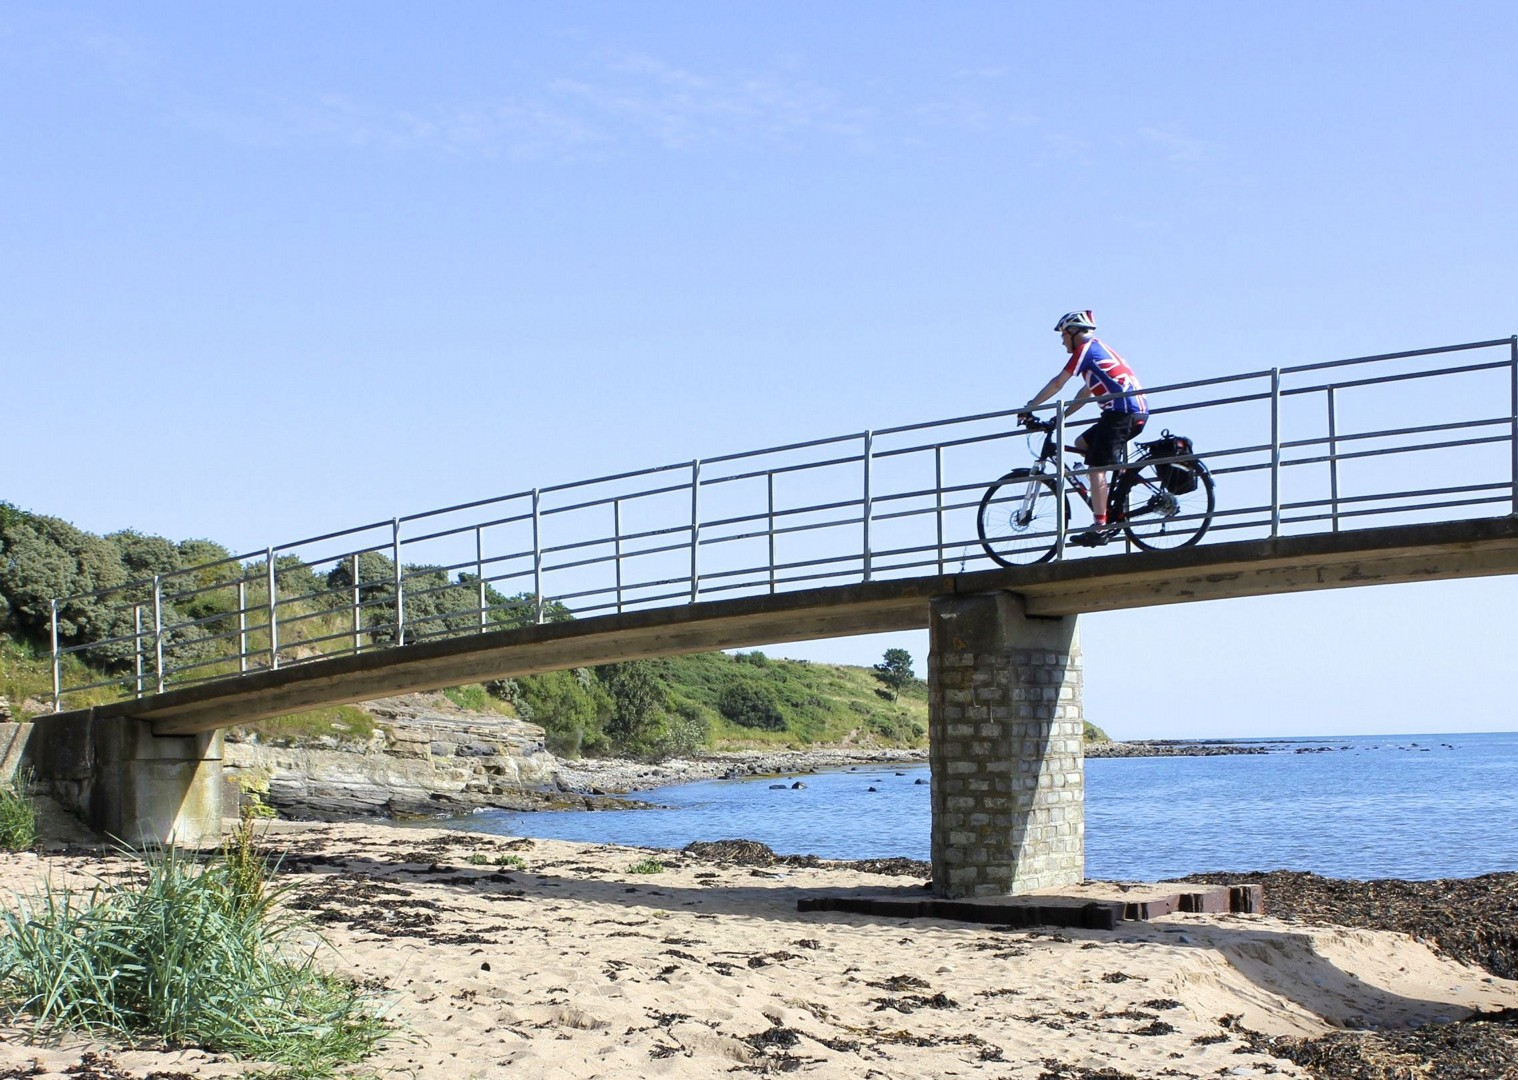 Coast&castles.jpg - UK - Coast and Castles - Supported Leisure Cycling Holiday - Family Cycling